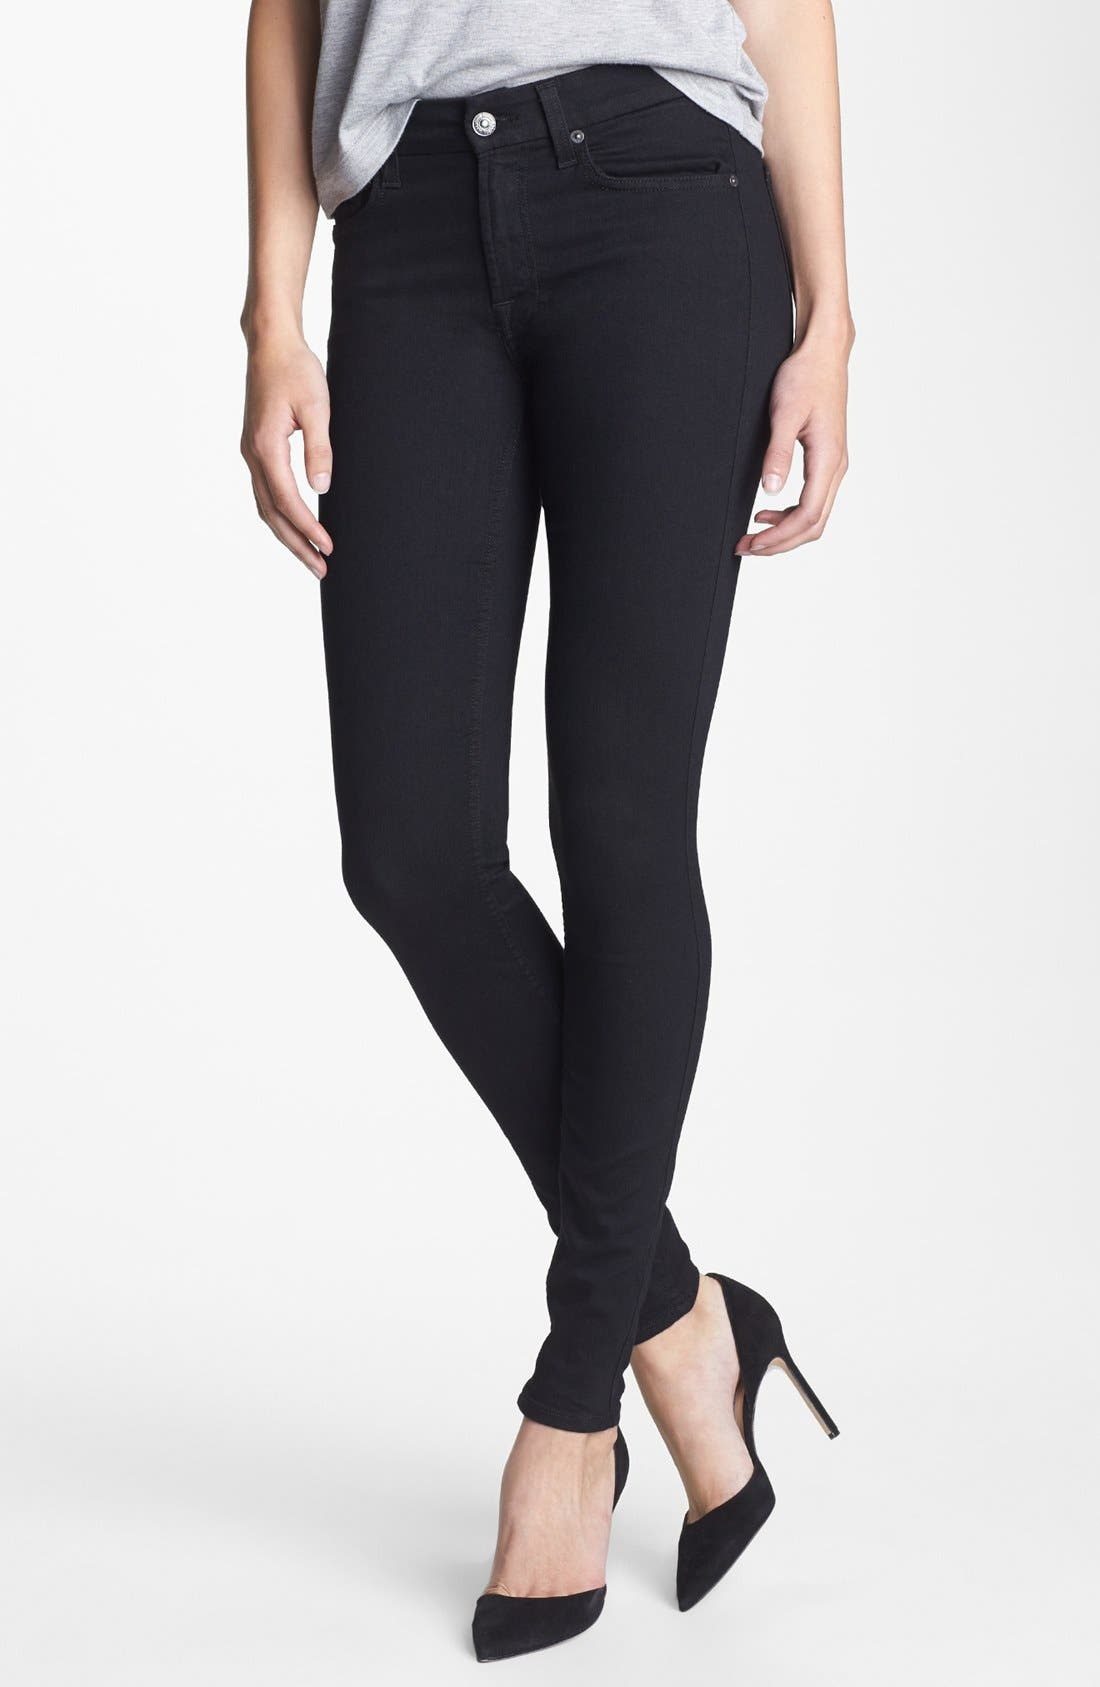 Alternate Image 1 Selected - 7 For All Mankind® Stretch Skinny Jeans (Elasticity Black)